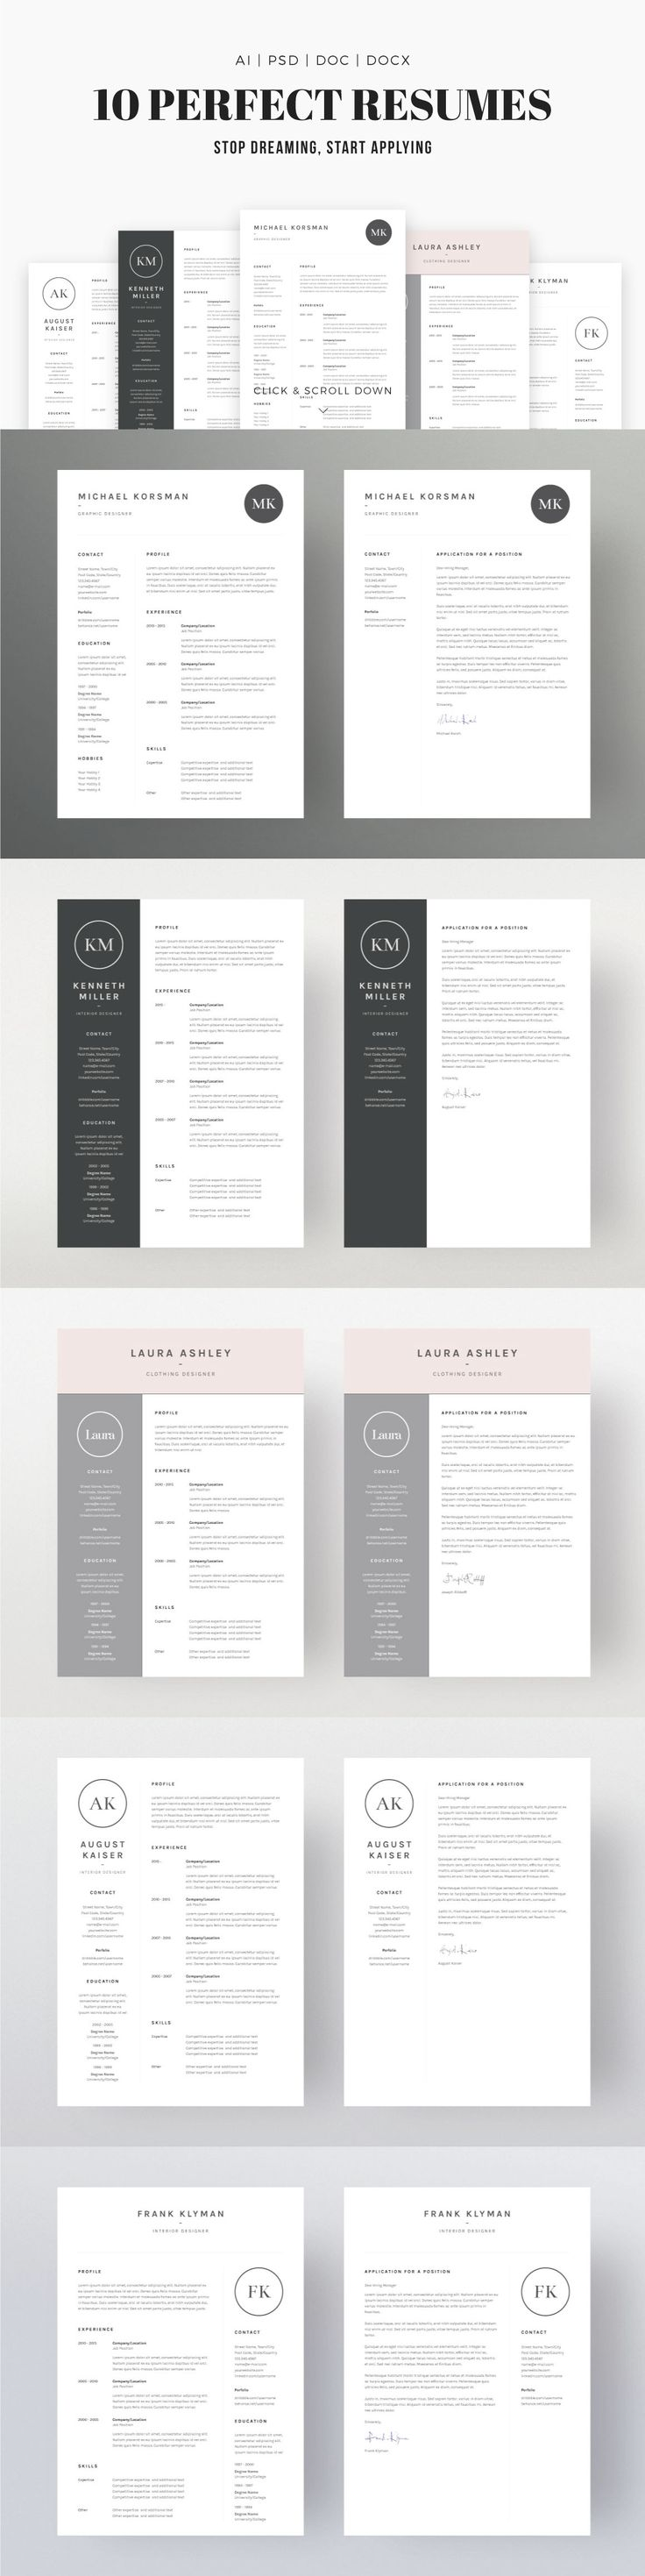 Job Seeker's Dream Bundle: Professional, downloadable resume template designs                                                                                                                                                      More